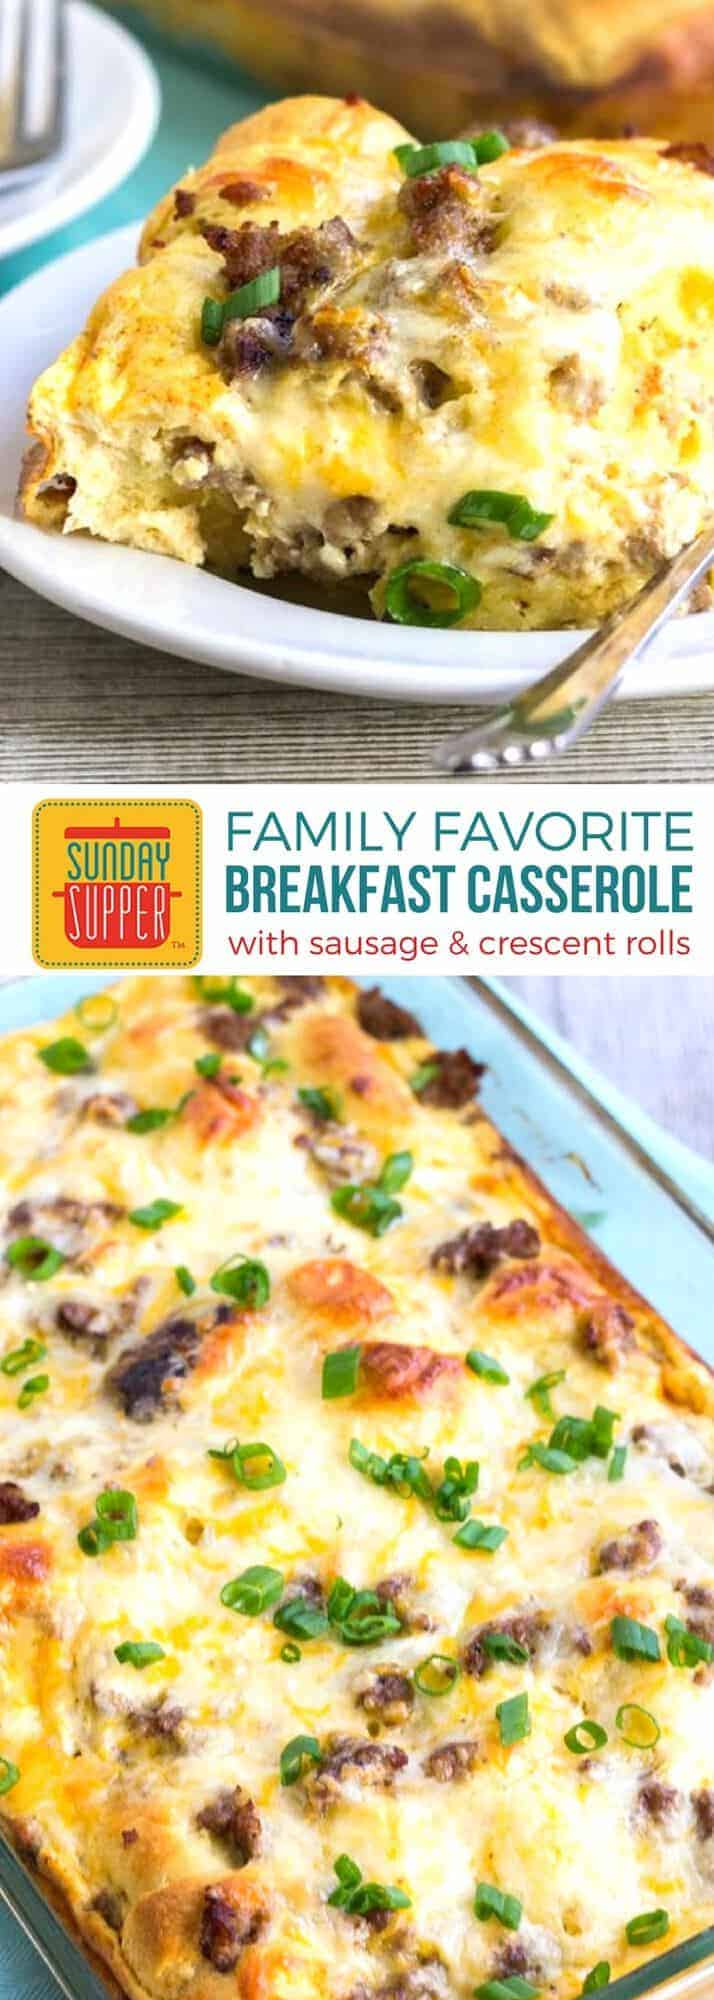 Sausage Breakfast Casserole with Crescent Rolls is an easy breakfast that's great for feeding a crowd! Loaded with lots of flavor from the sausage, cheese, and buttery crescent rolls, this easy recipe is filling, hearty, and so delicious! It tops the list of our favorite Holiday Casserole Recipes. #SundaySupper #EasyRecipe #HolidayRecipe #BreakfastCasserole